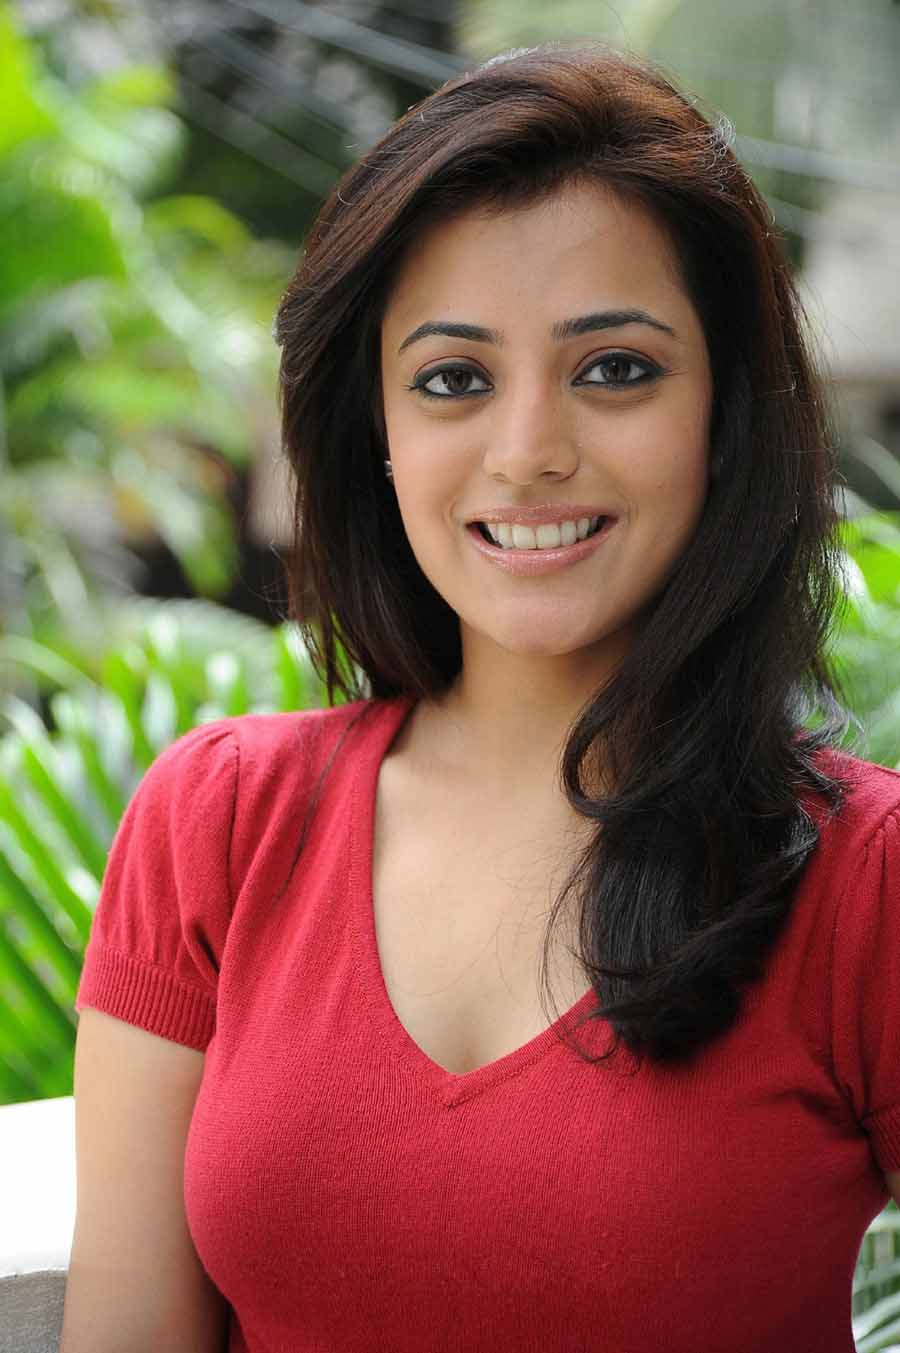 190 Nisha Agarwal Sister Of Kagal Agarwal Hot Sexy -1802